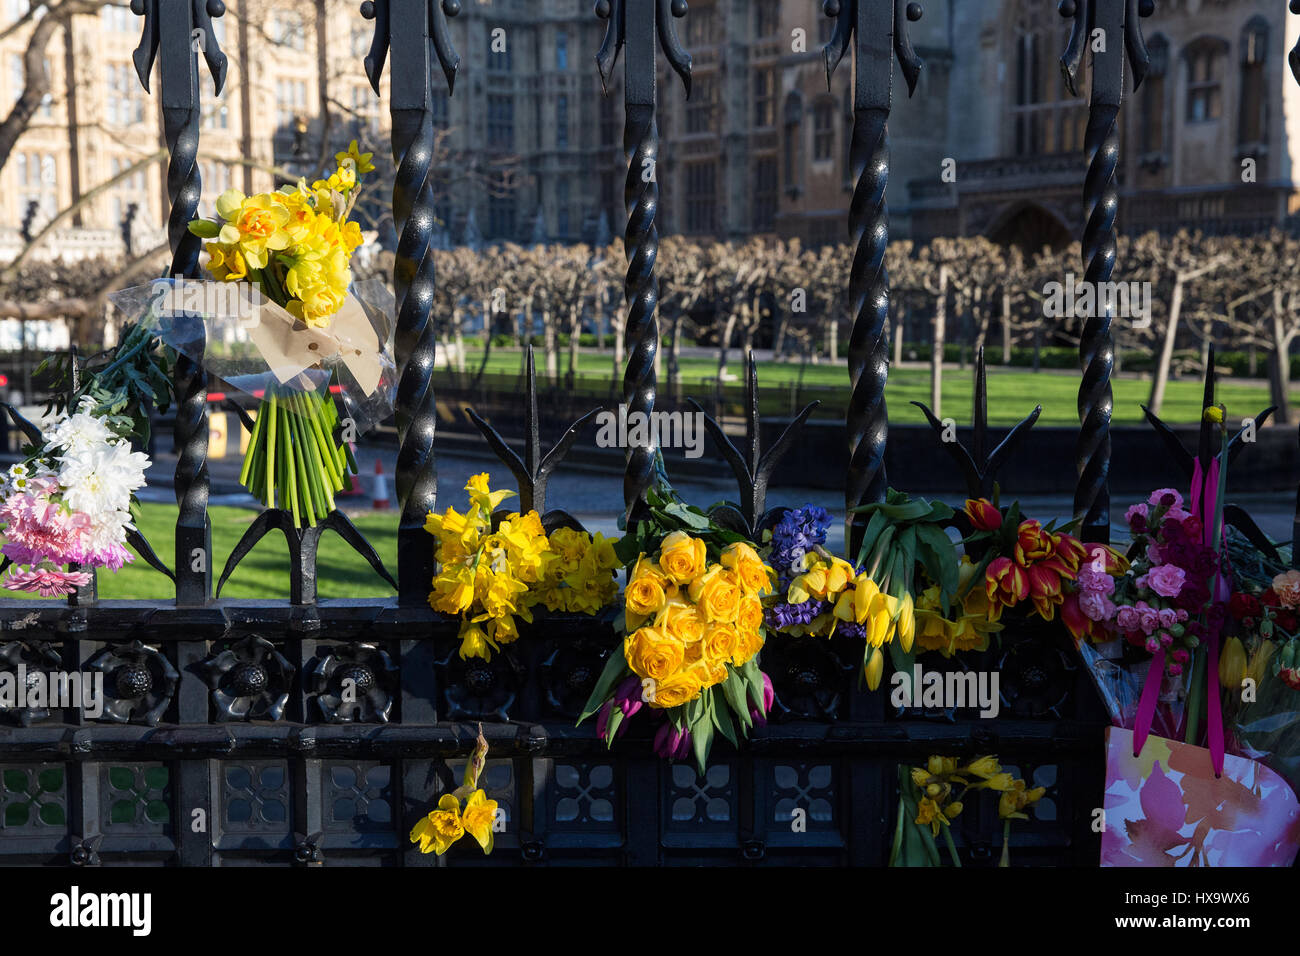 London, UK. 25th Mar, 2017. Spring flowers arranged outside the perimeter fence of the Palace of Westminster in - Stock Image